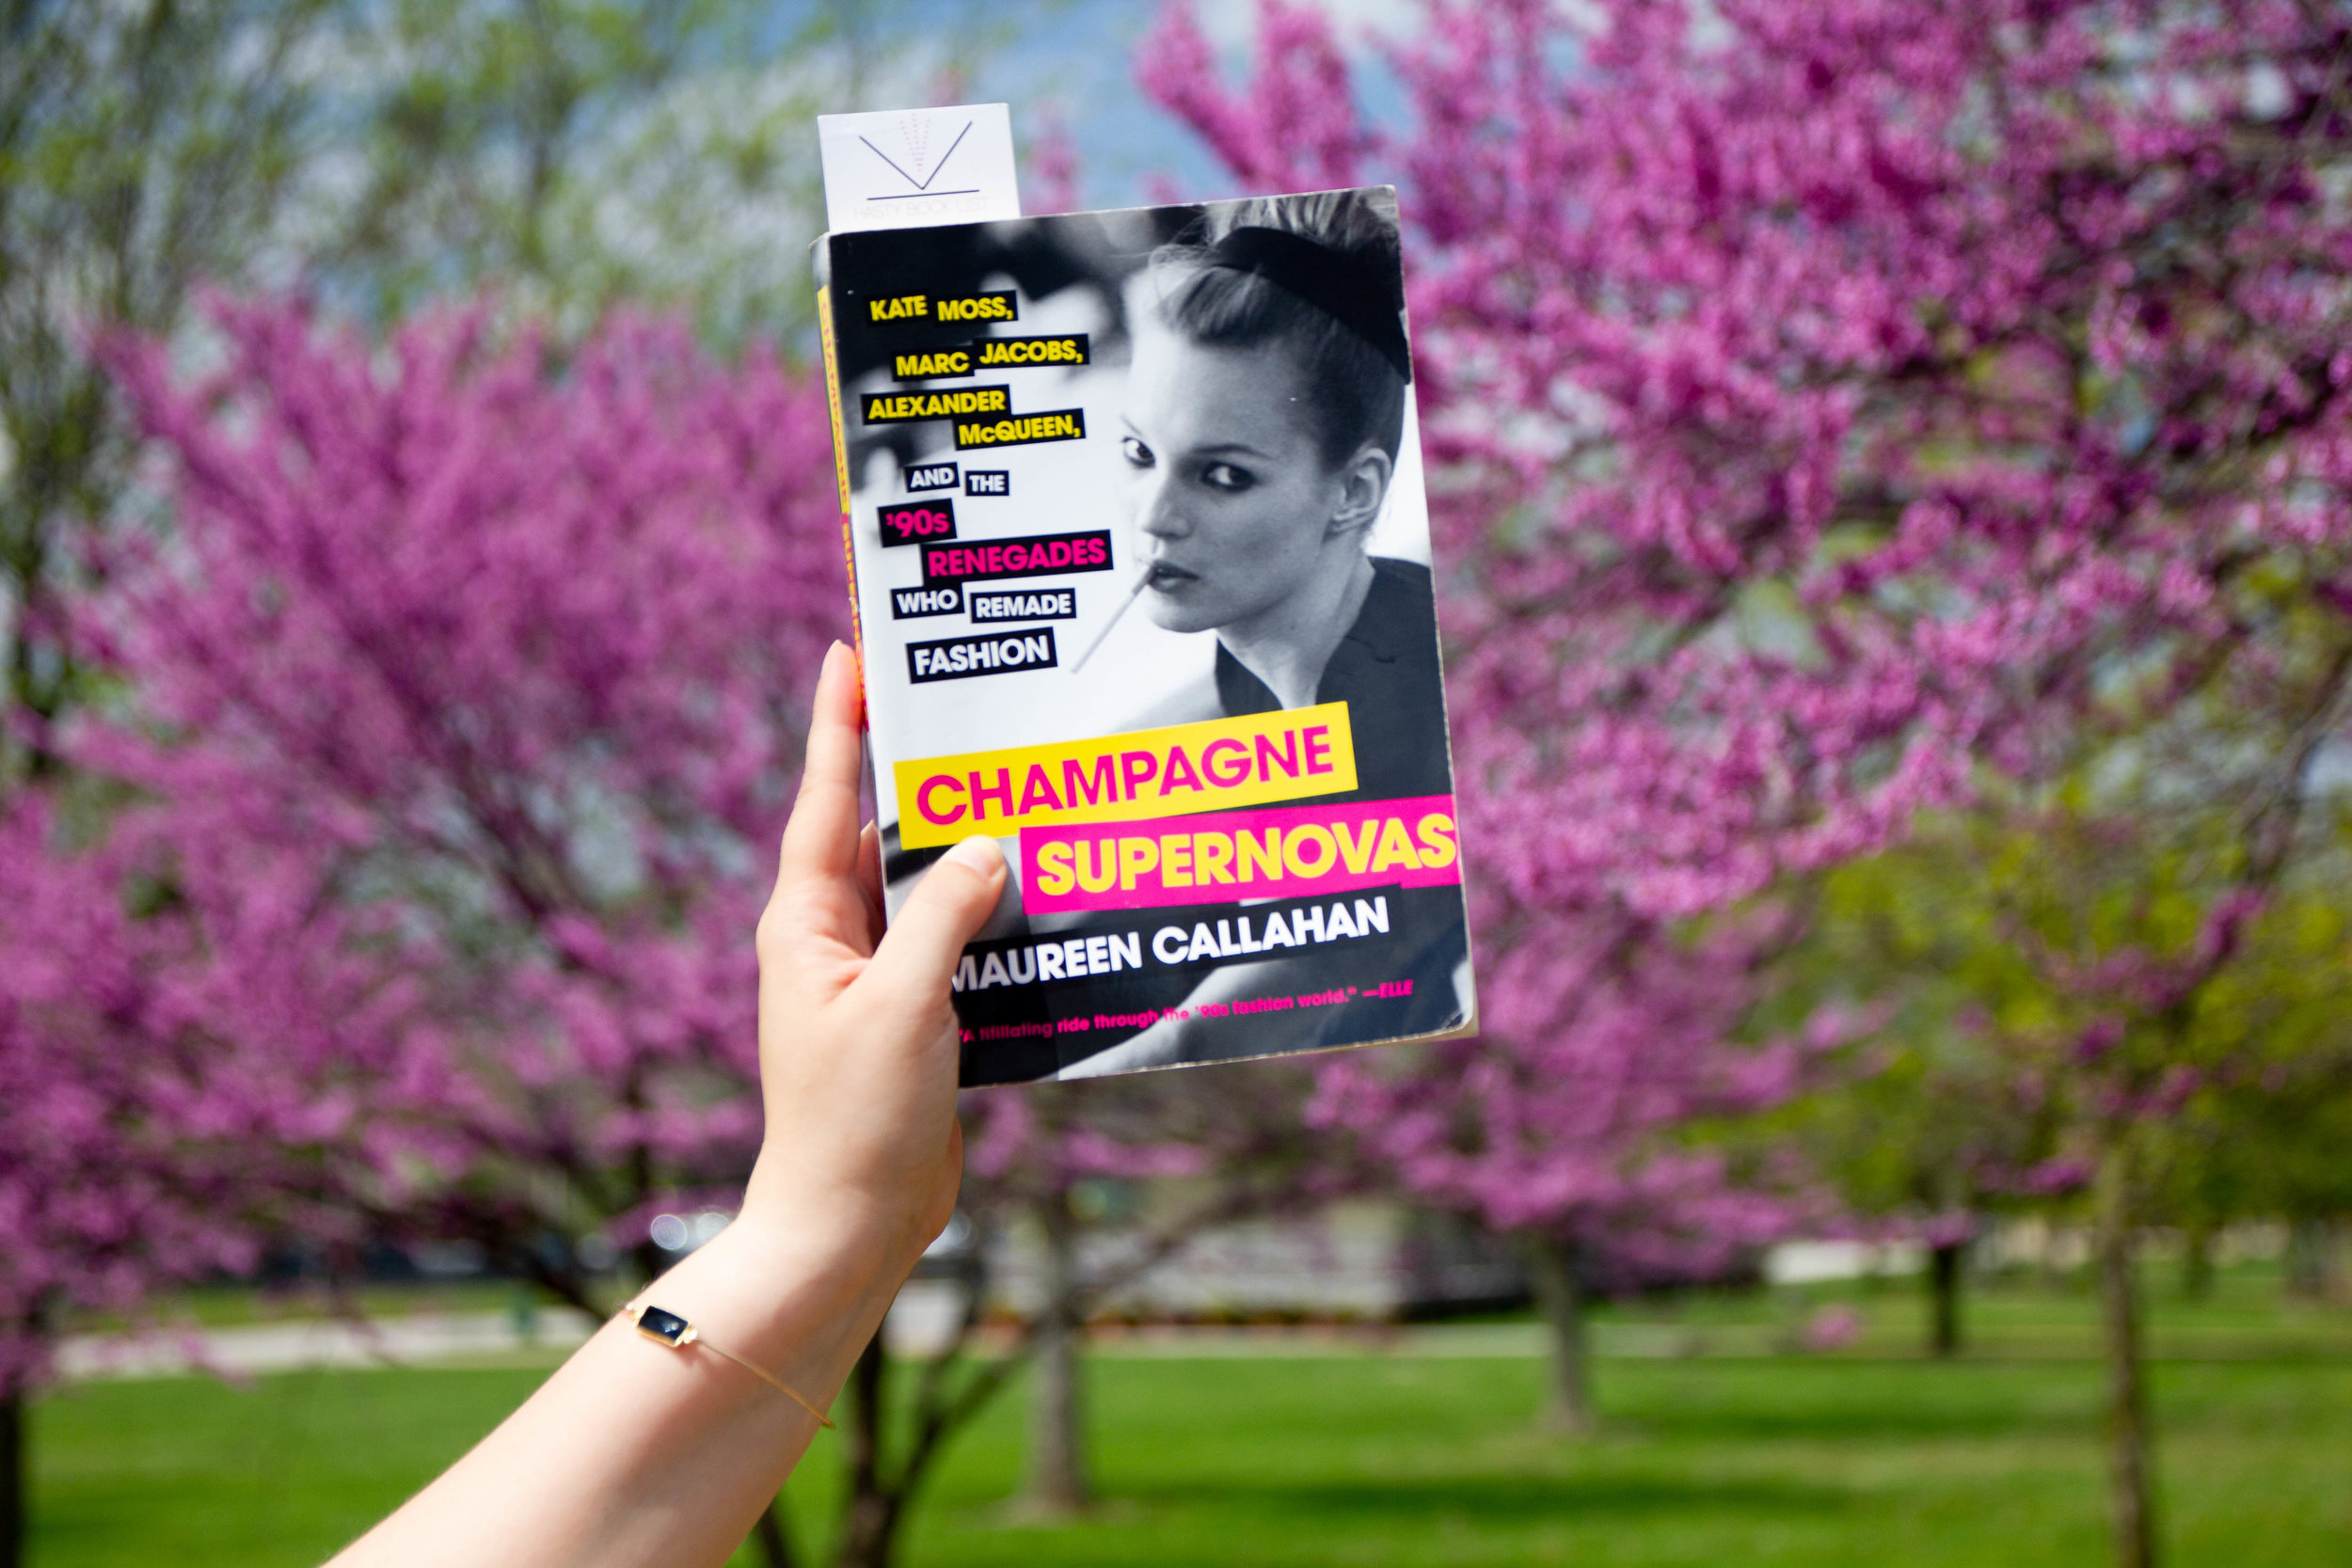 Reading Champagne Supernovas by Maureen Callahan by the Missouri River in Historic St. Charles, MO